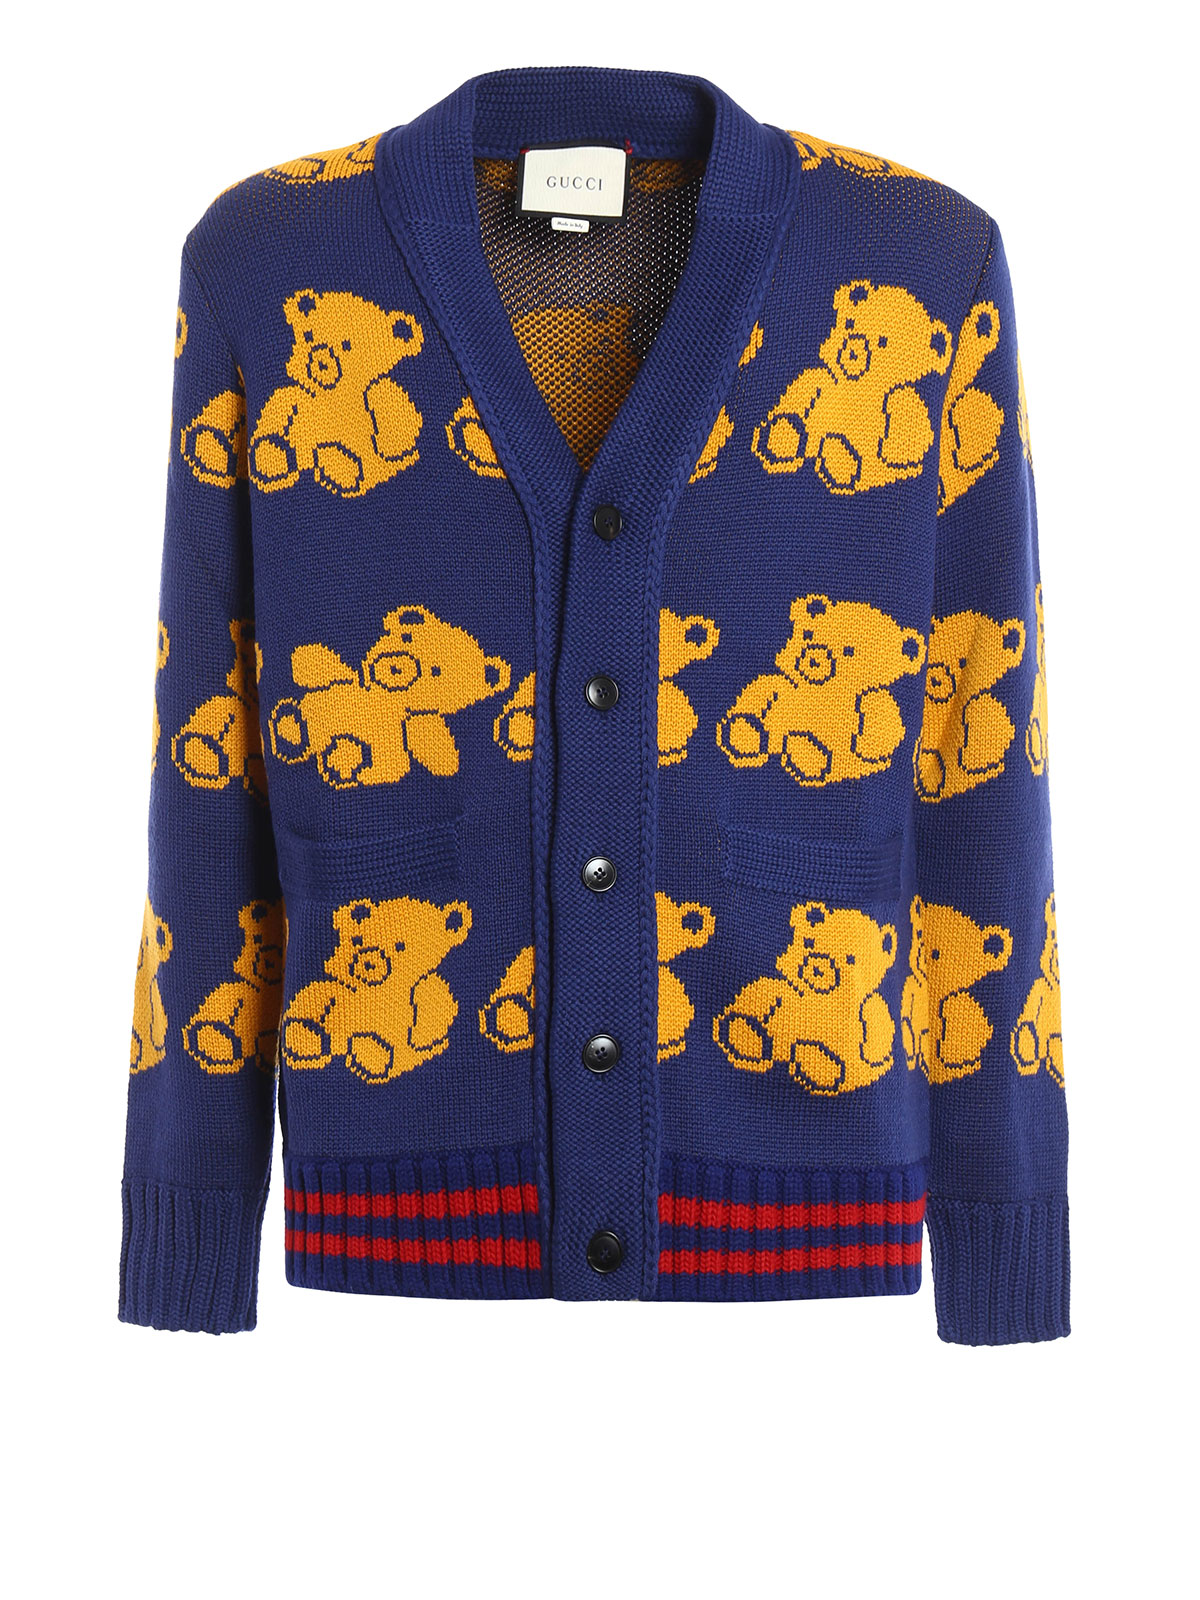 3be2e5d02 Gucci - Teddy bear jacquard wool cardigan - cardigans - 442638 X1357 ...